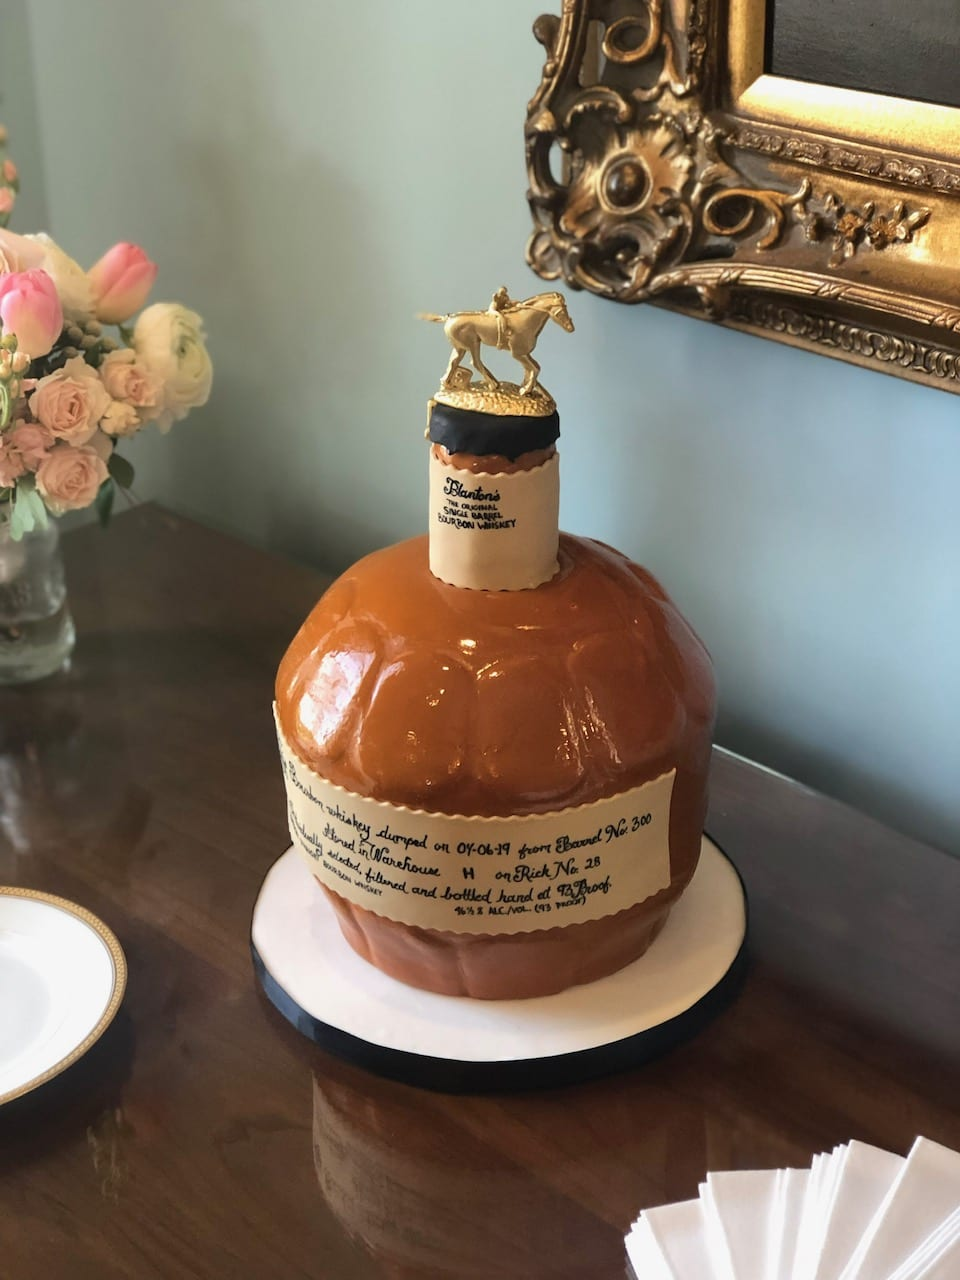 Blanton's Bourbon Bottle Cake